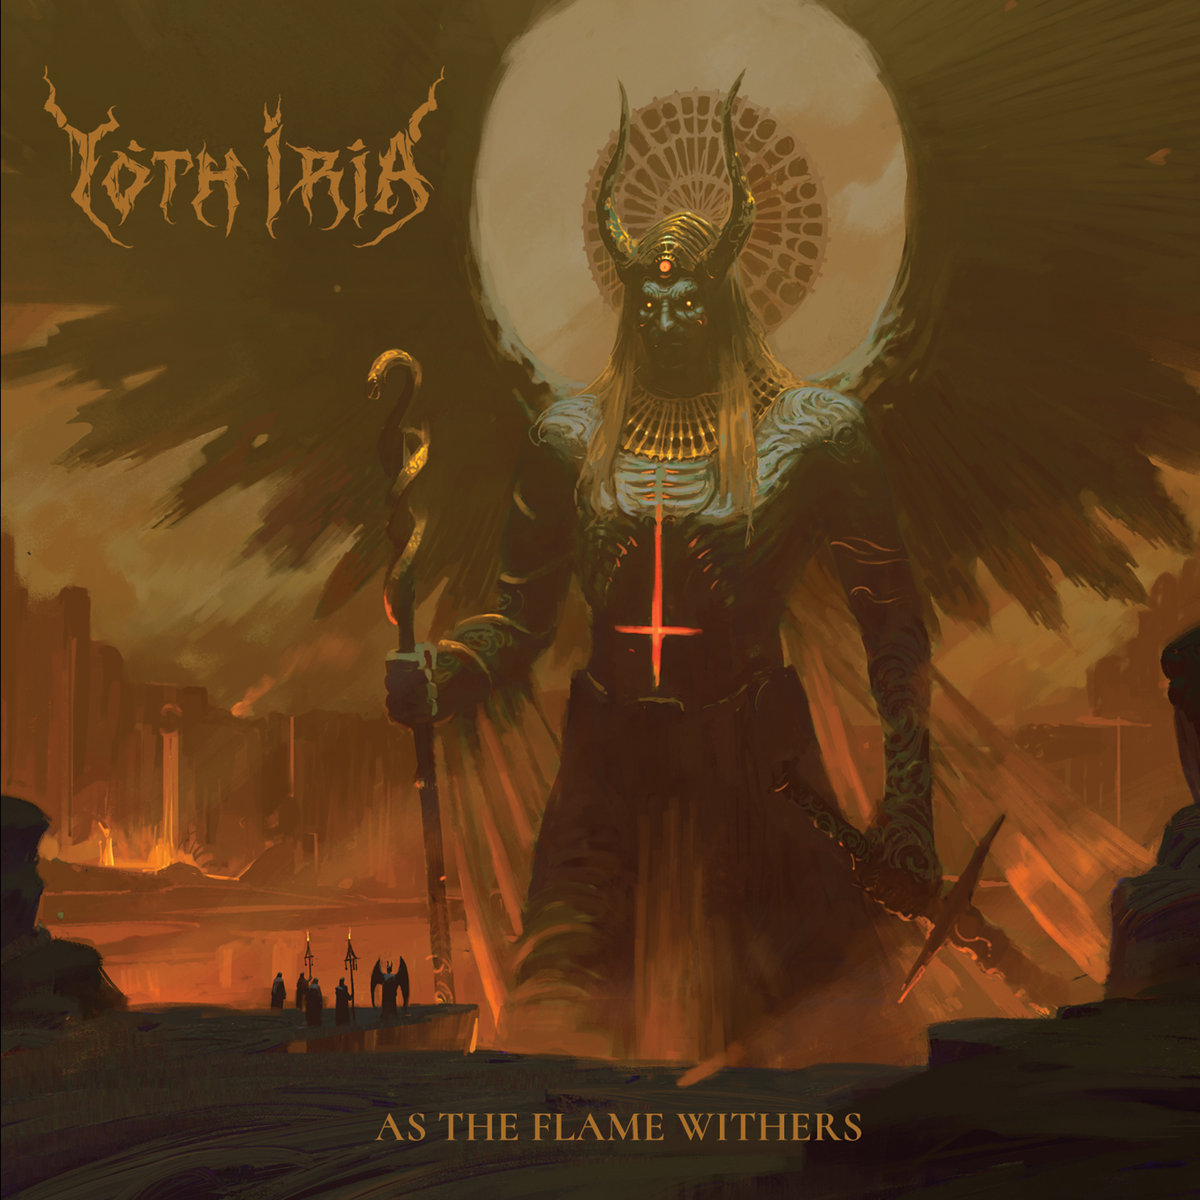 Yoth Iria⛧As The Flame Withers | review